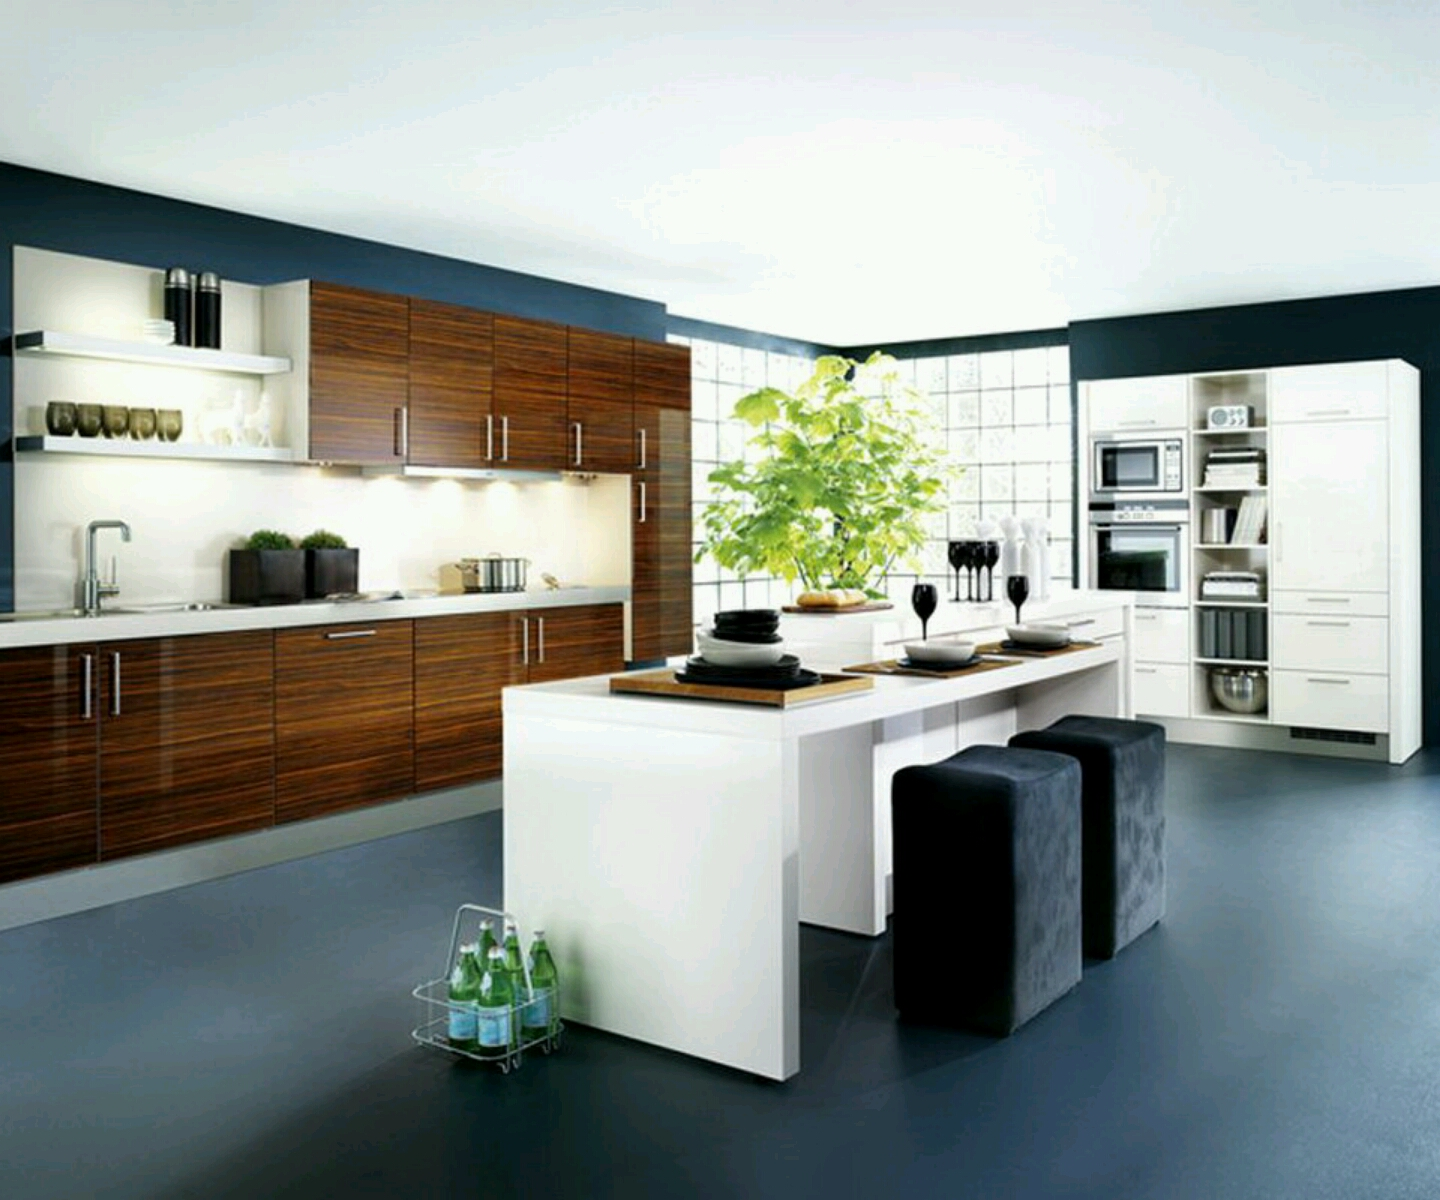 New home designs latest kitchen cabinets designs modern homes - Kitchen cupboards ideas ...